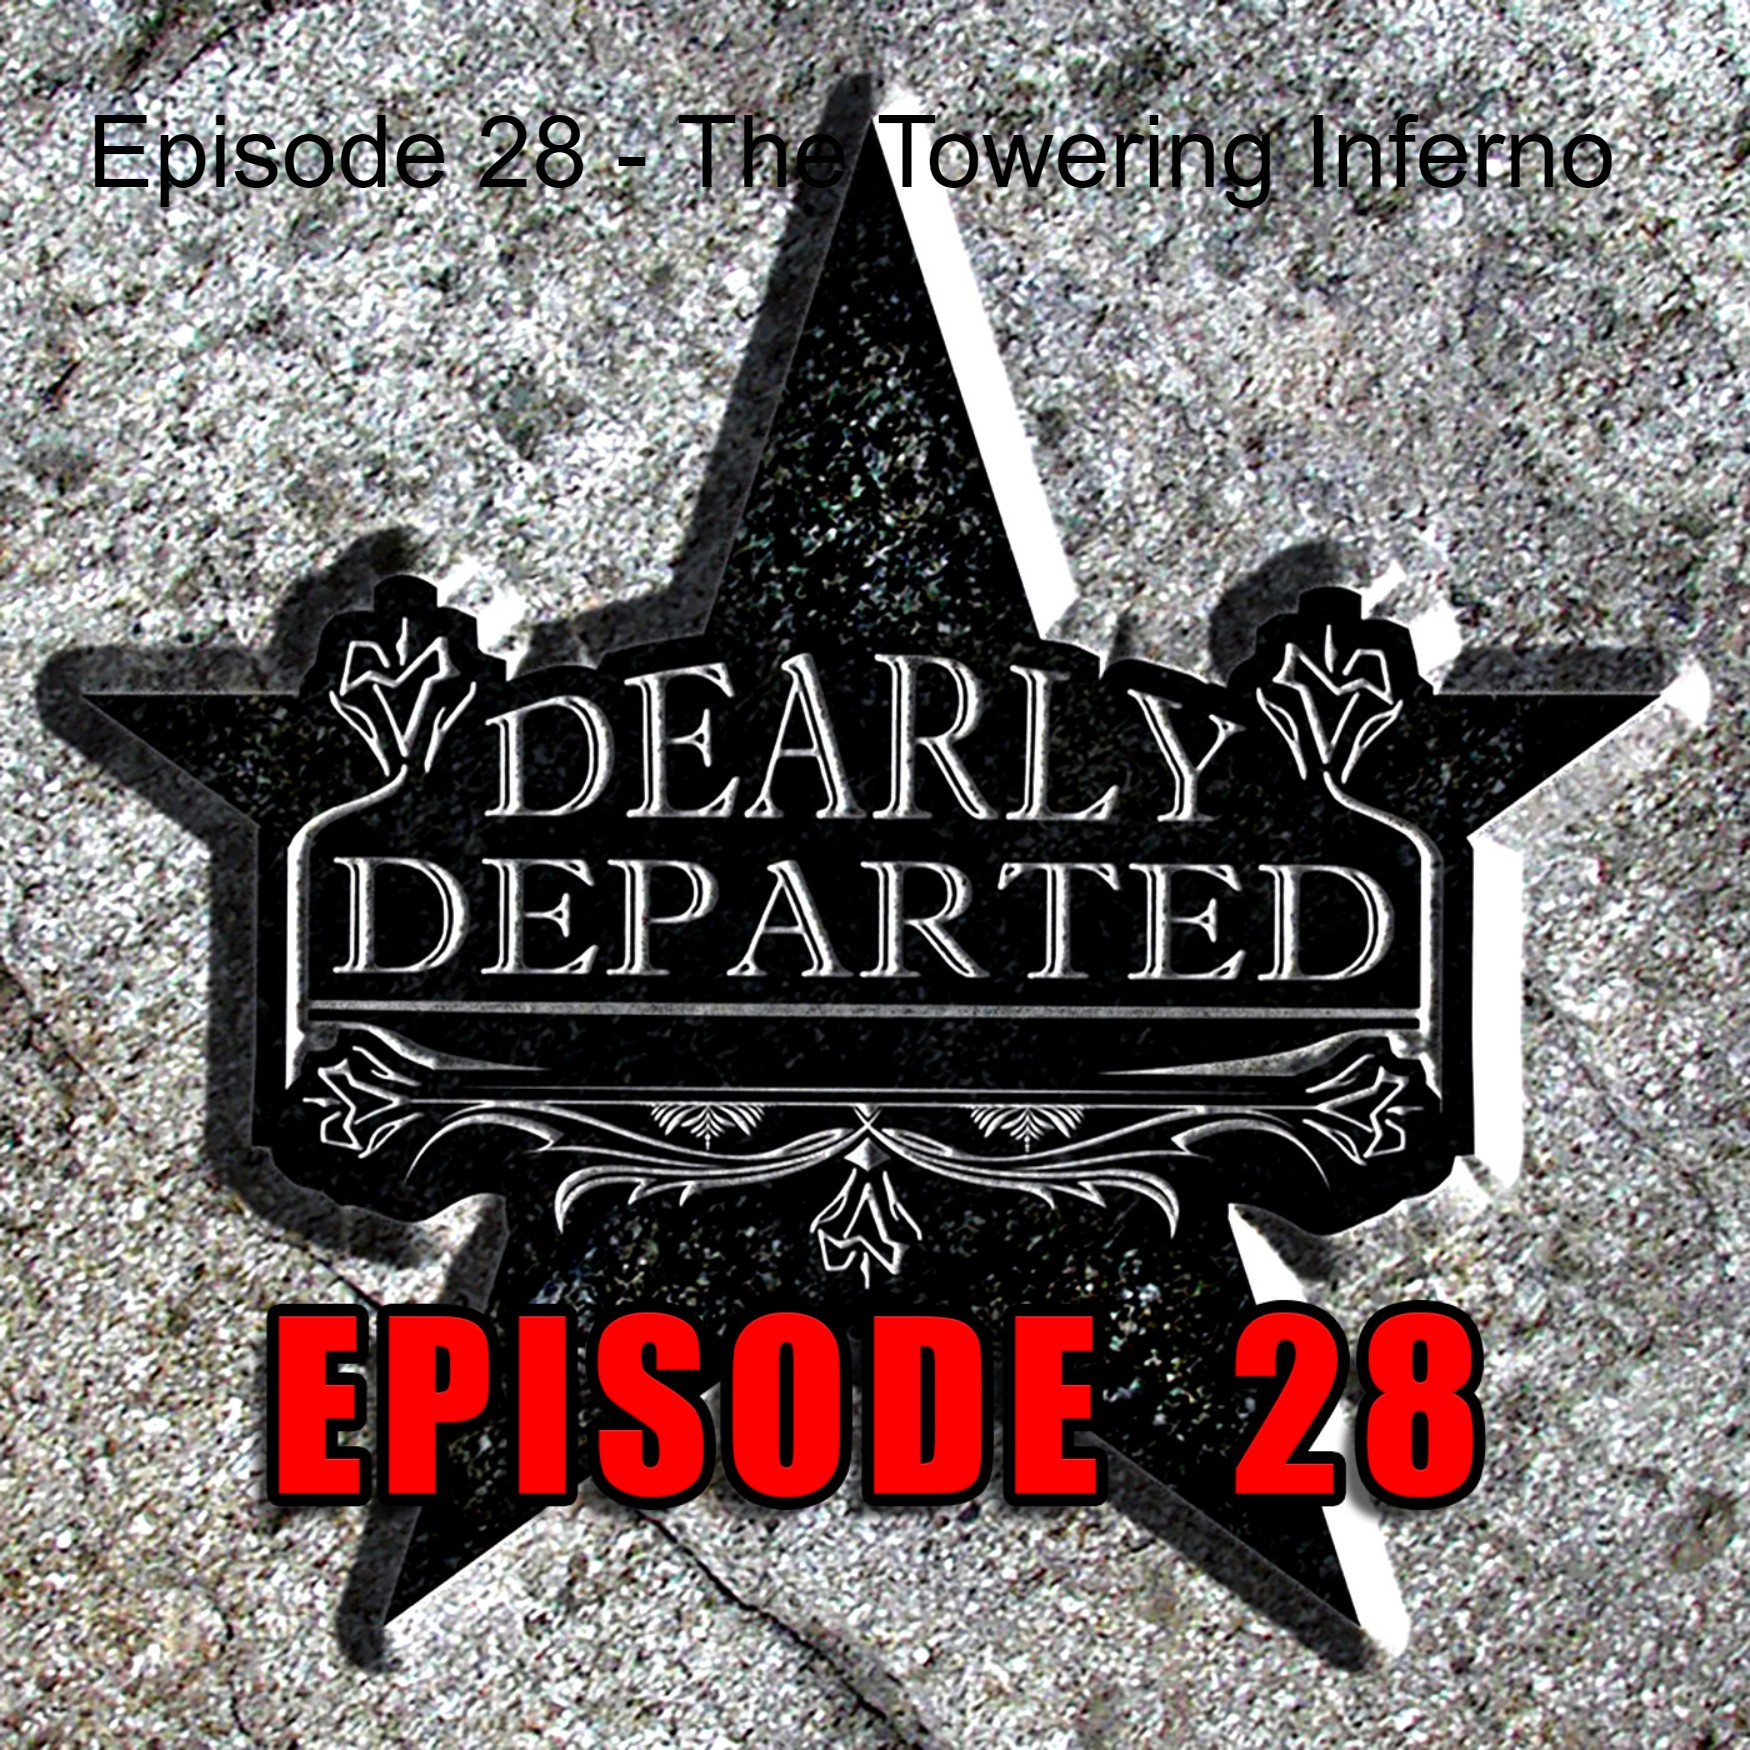 Episode 28 - The Towering Inferno